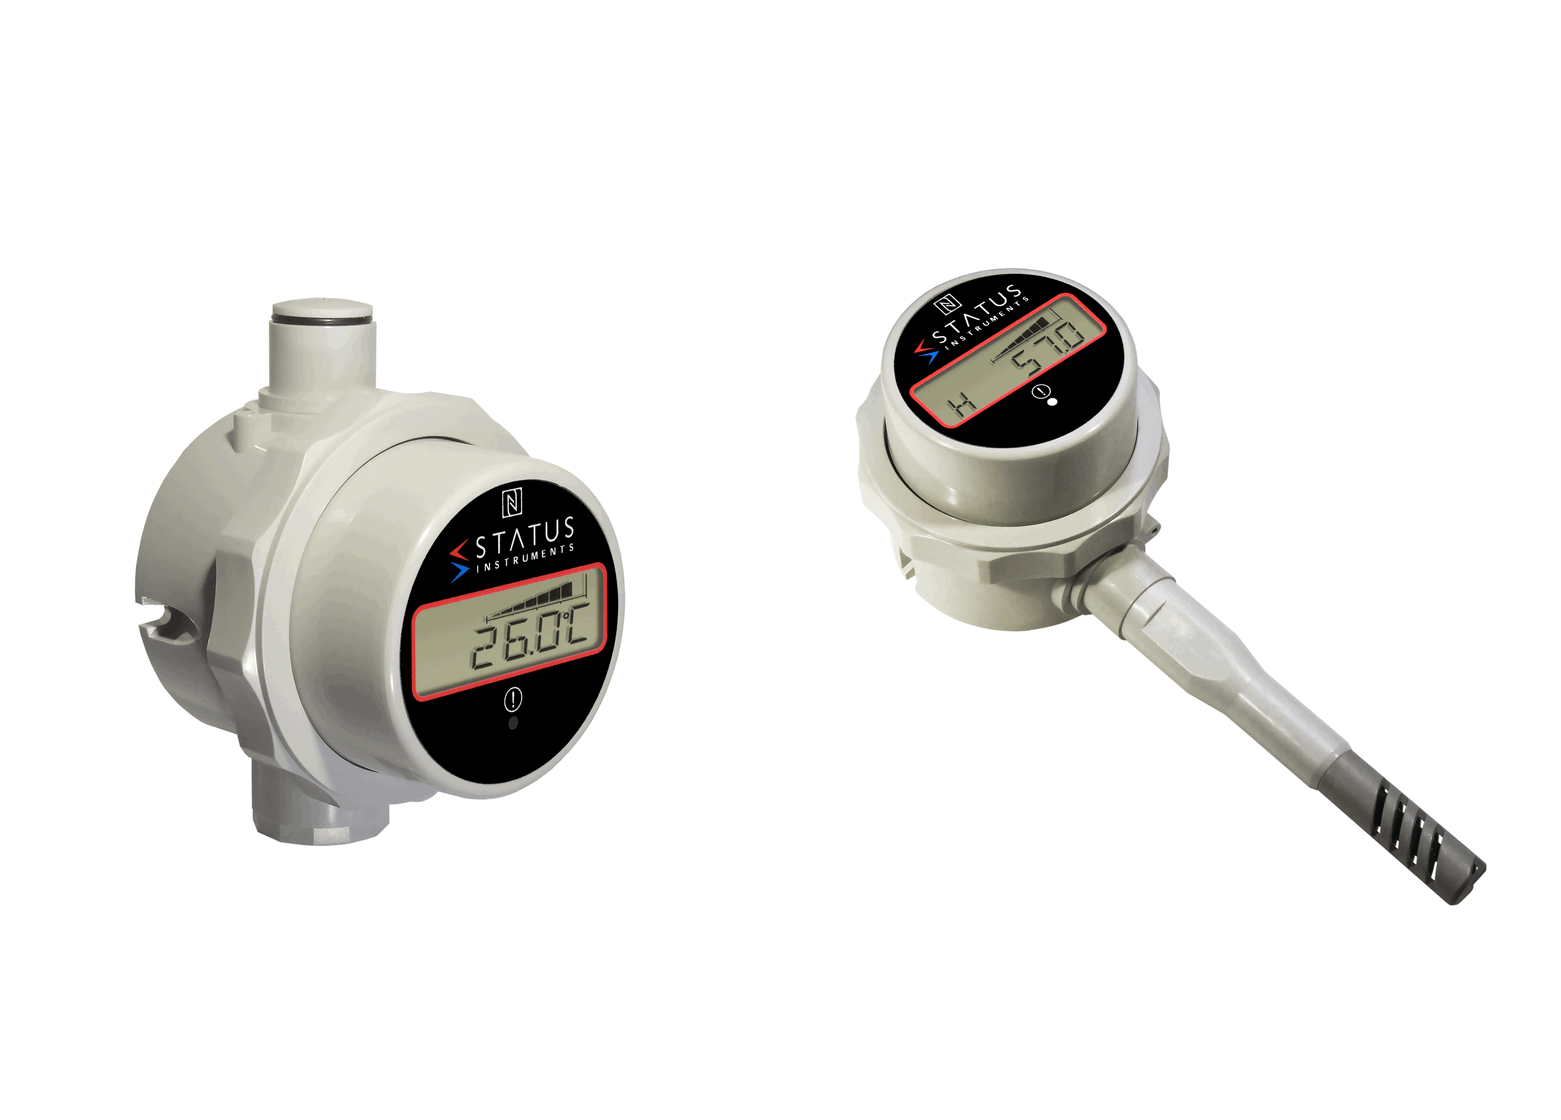 Temperature, Humidity, Pressure & mA/Voltage Gauges with Displays